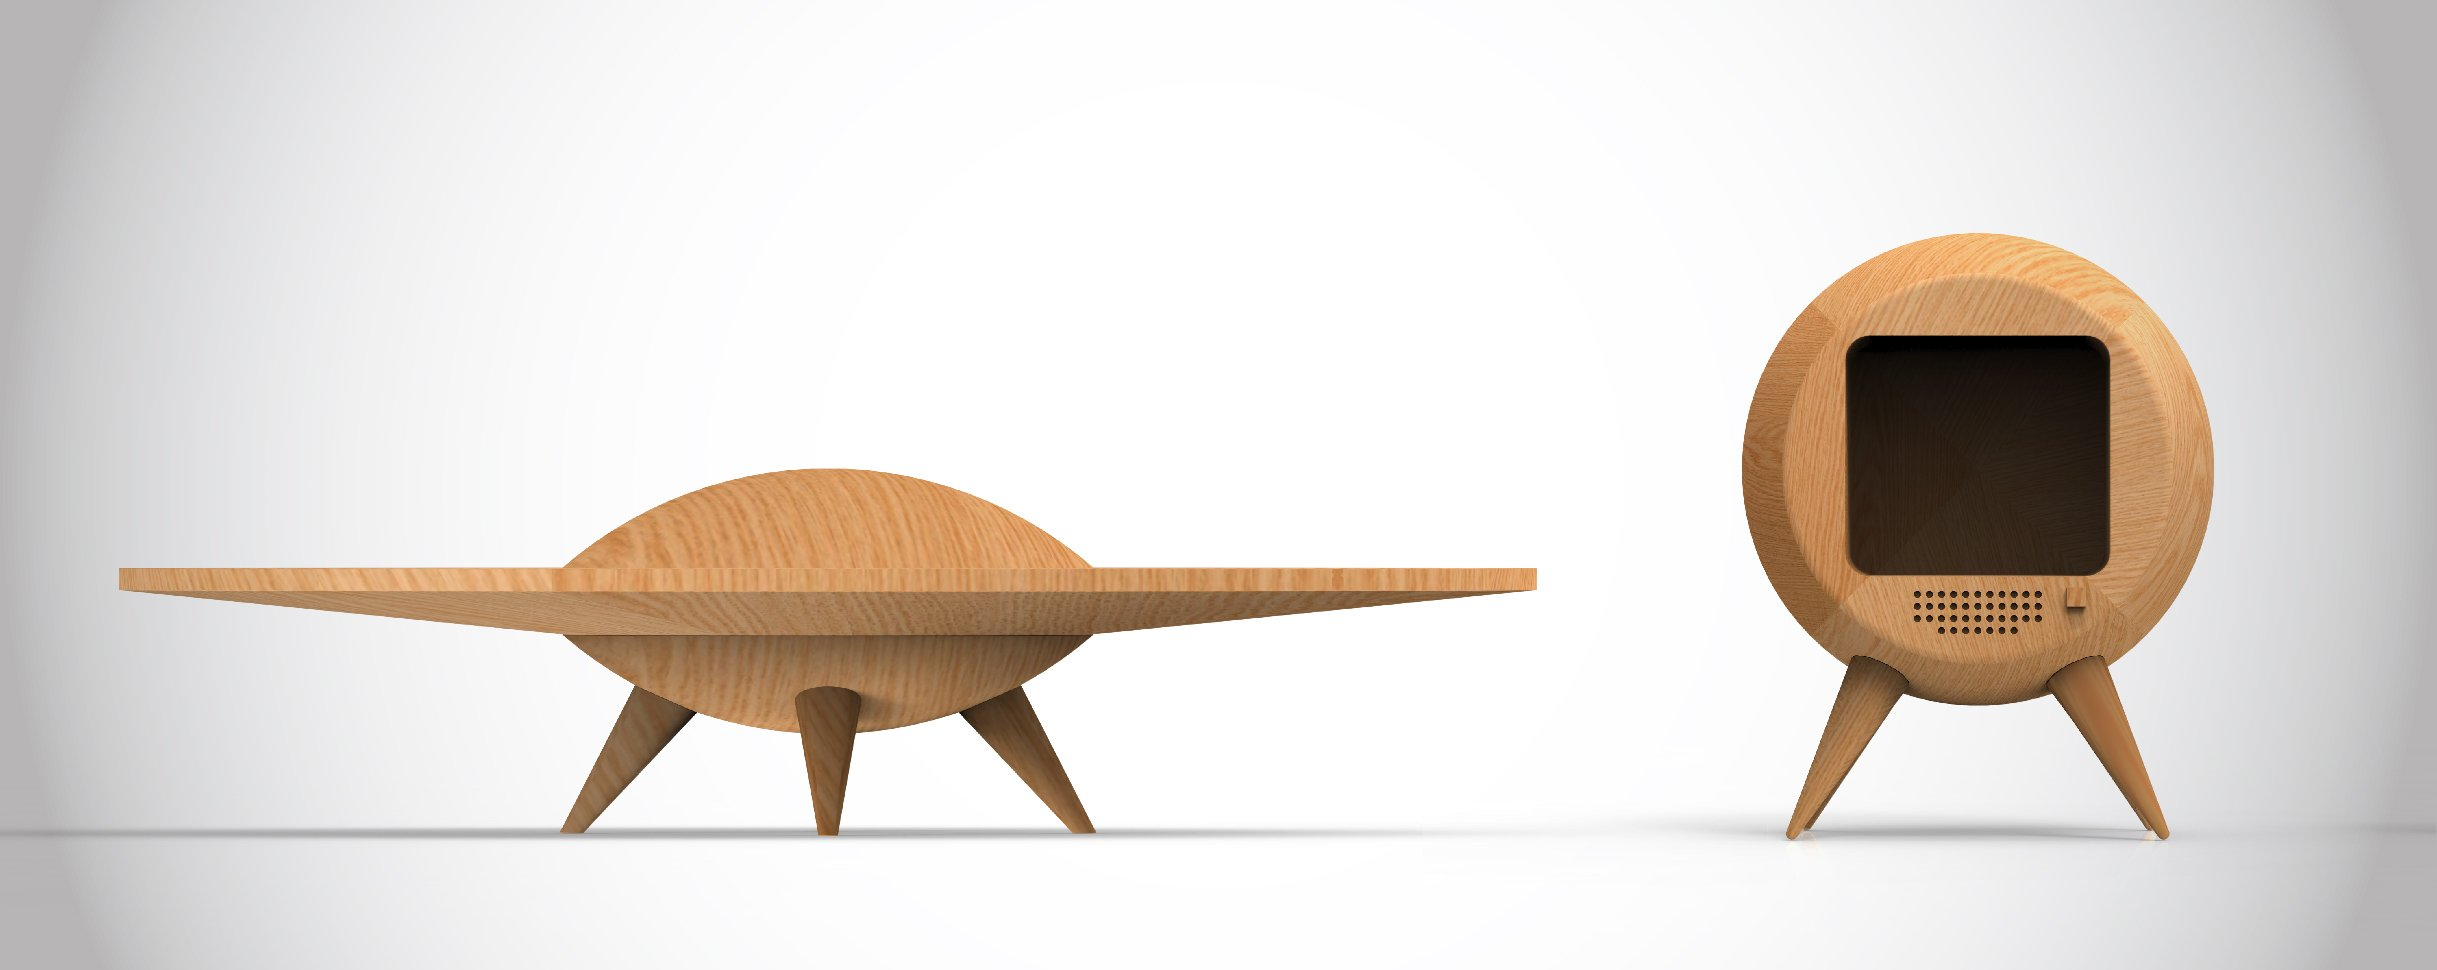 furniture_design_02x